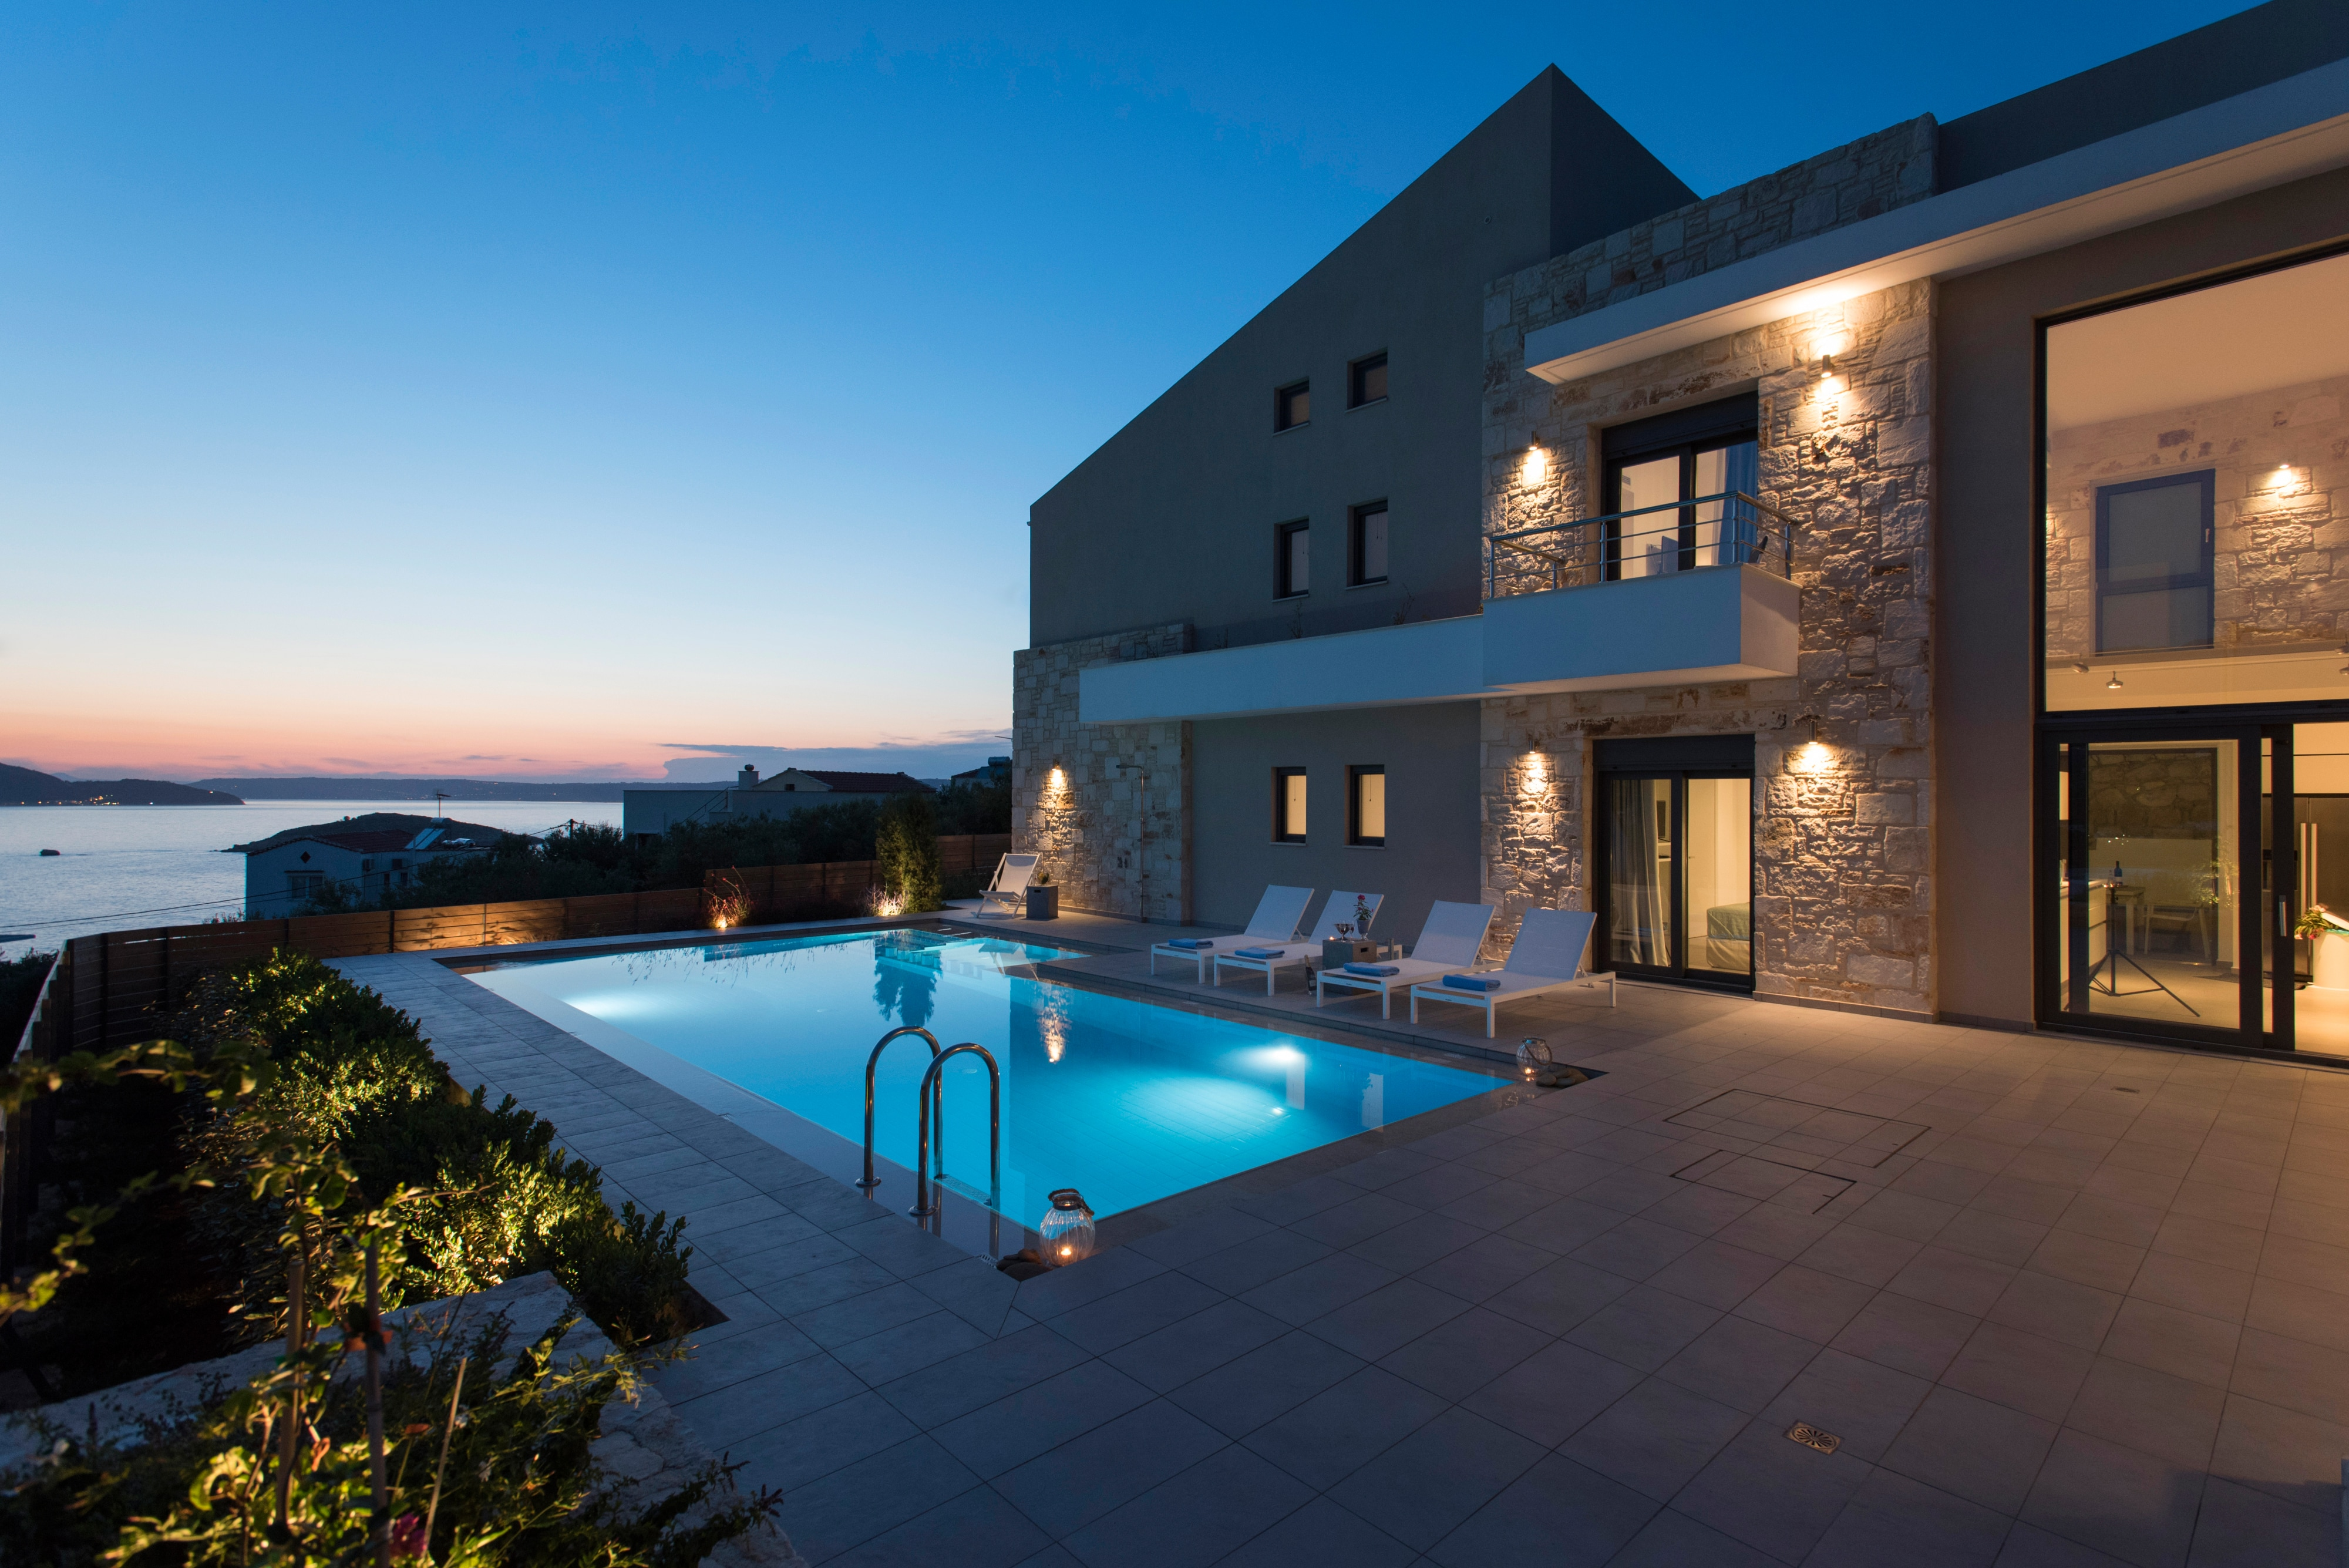 Property Image 1 - Contemporary villa with aesthetic interior design and private pool